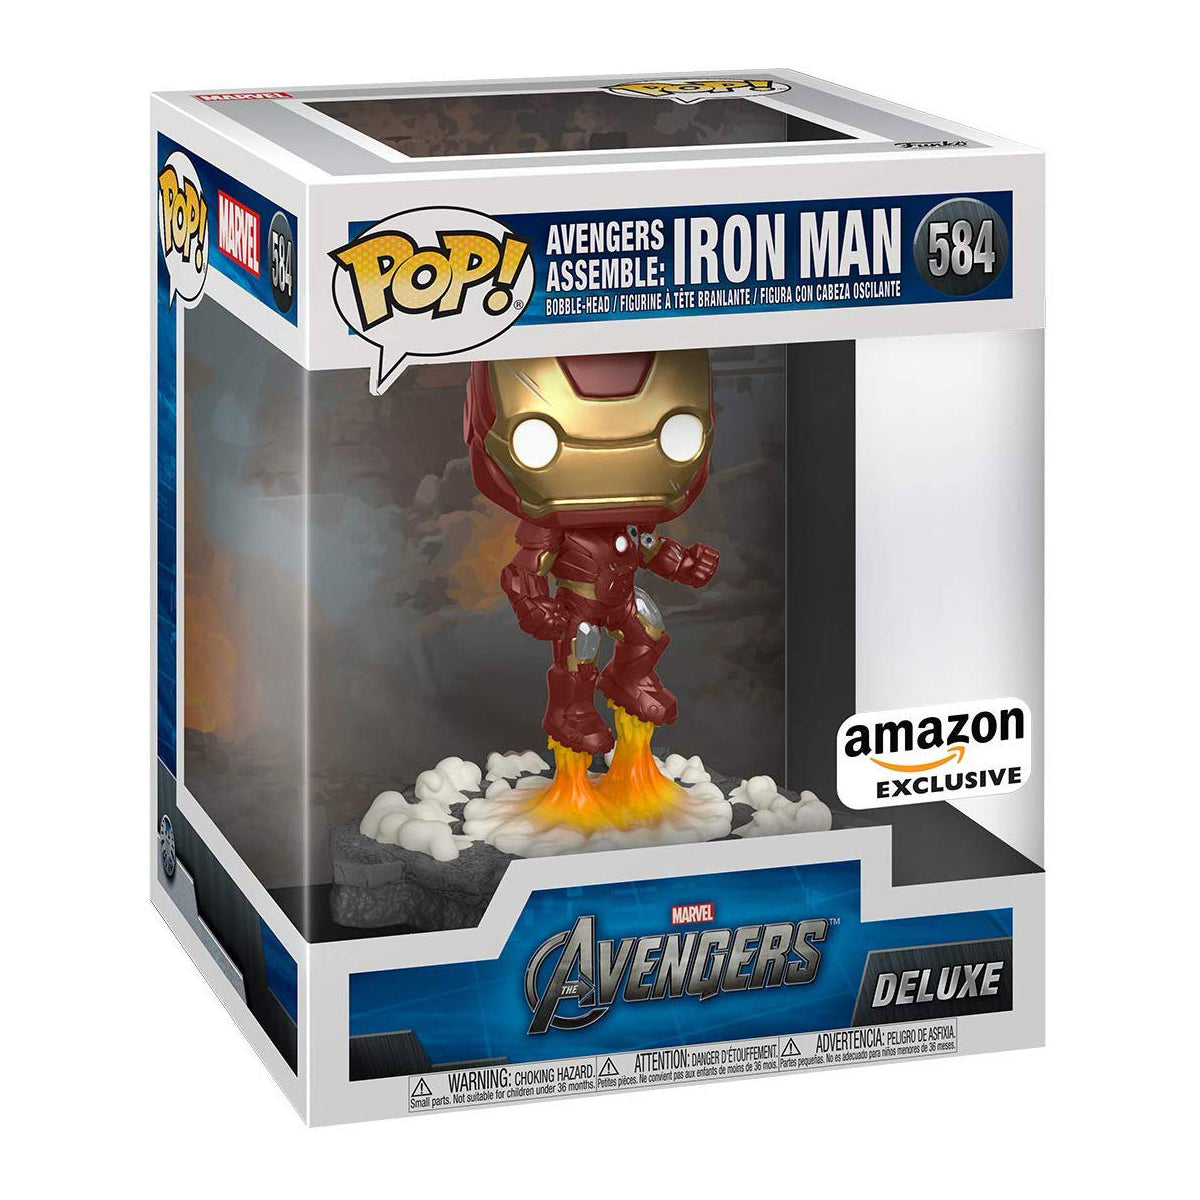 Marvel Avengers Assemble Iron Man Deluxe Exclusive